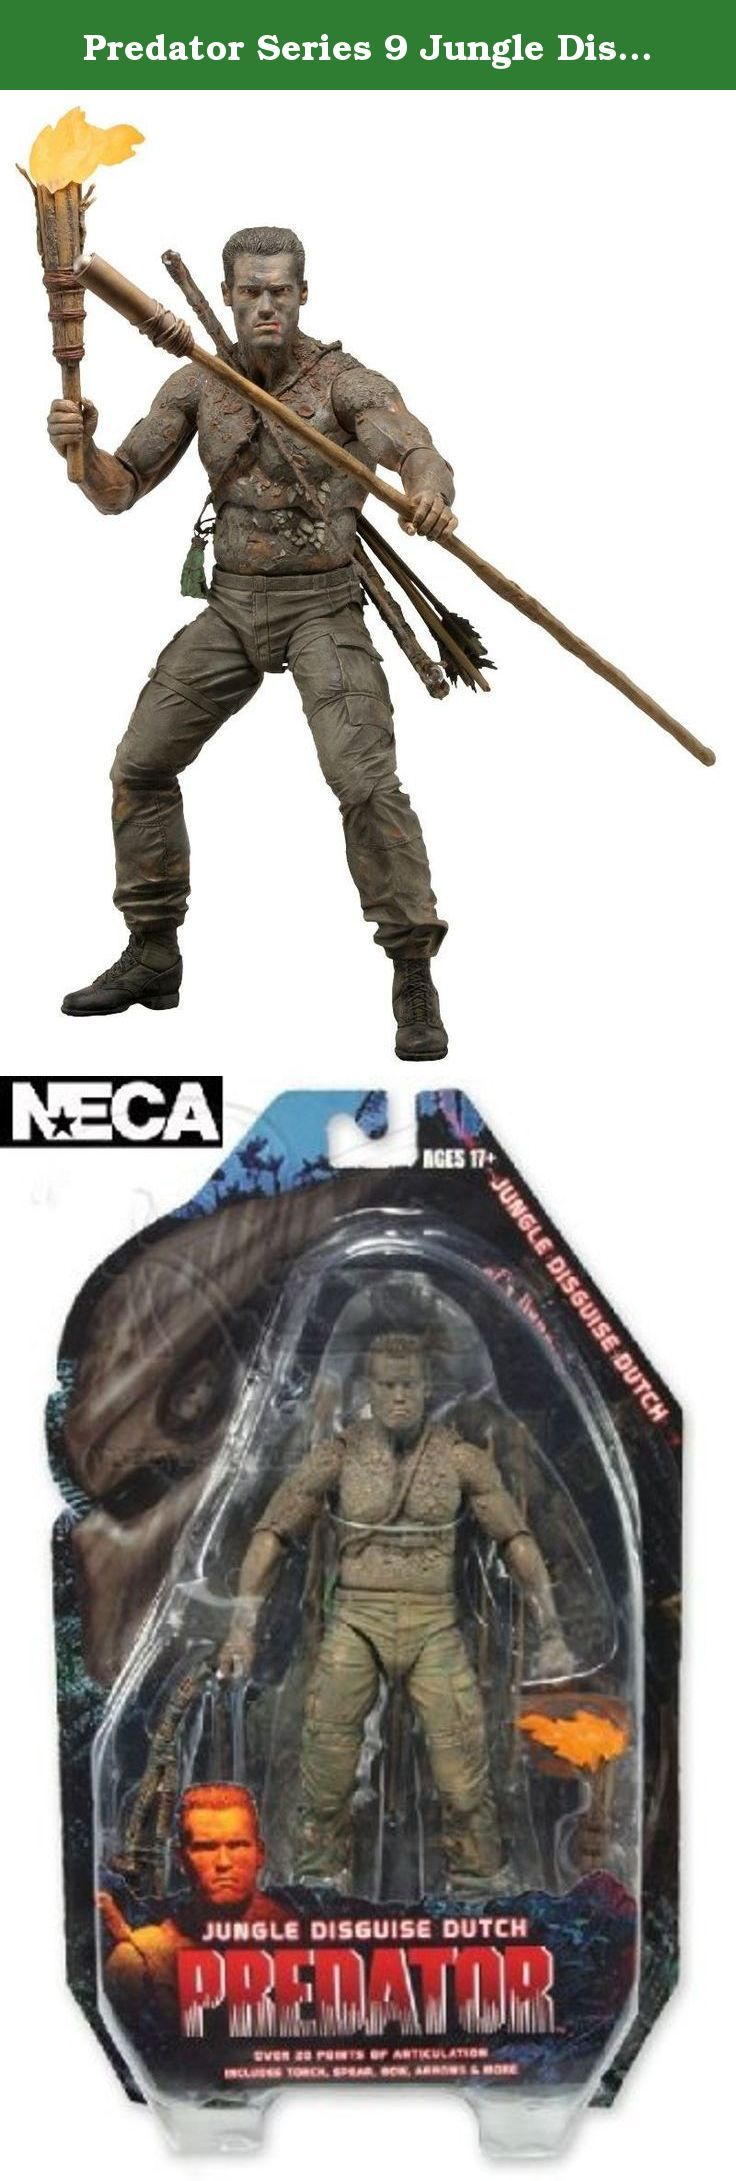 """Predator Series 9 Jungle Disguise Dutch 7"""" Action Figure. The 9th Series in the #1 selling Predator collection celebrates the 25th Anniversary of the original 1987 Predator film with the follow-up assortment featuring Arnold Schwarzengger as Dutch Schaefer! Series 8 was an instant sellout and Series 9 delivers 2 brand new versions of Dutch along with an all new scene specific version of the Jungle Hunter. Jungle Encounter Dutch is faithful to his appearance when he first encounters the..."""